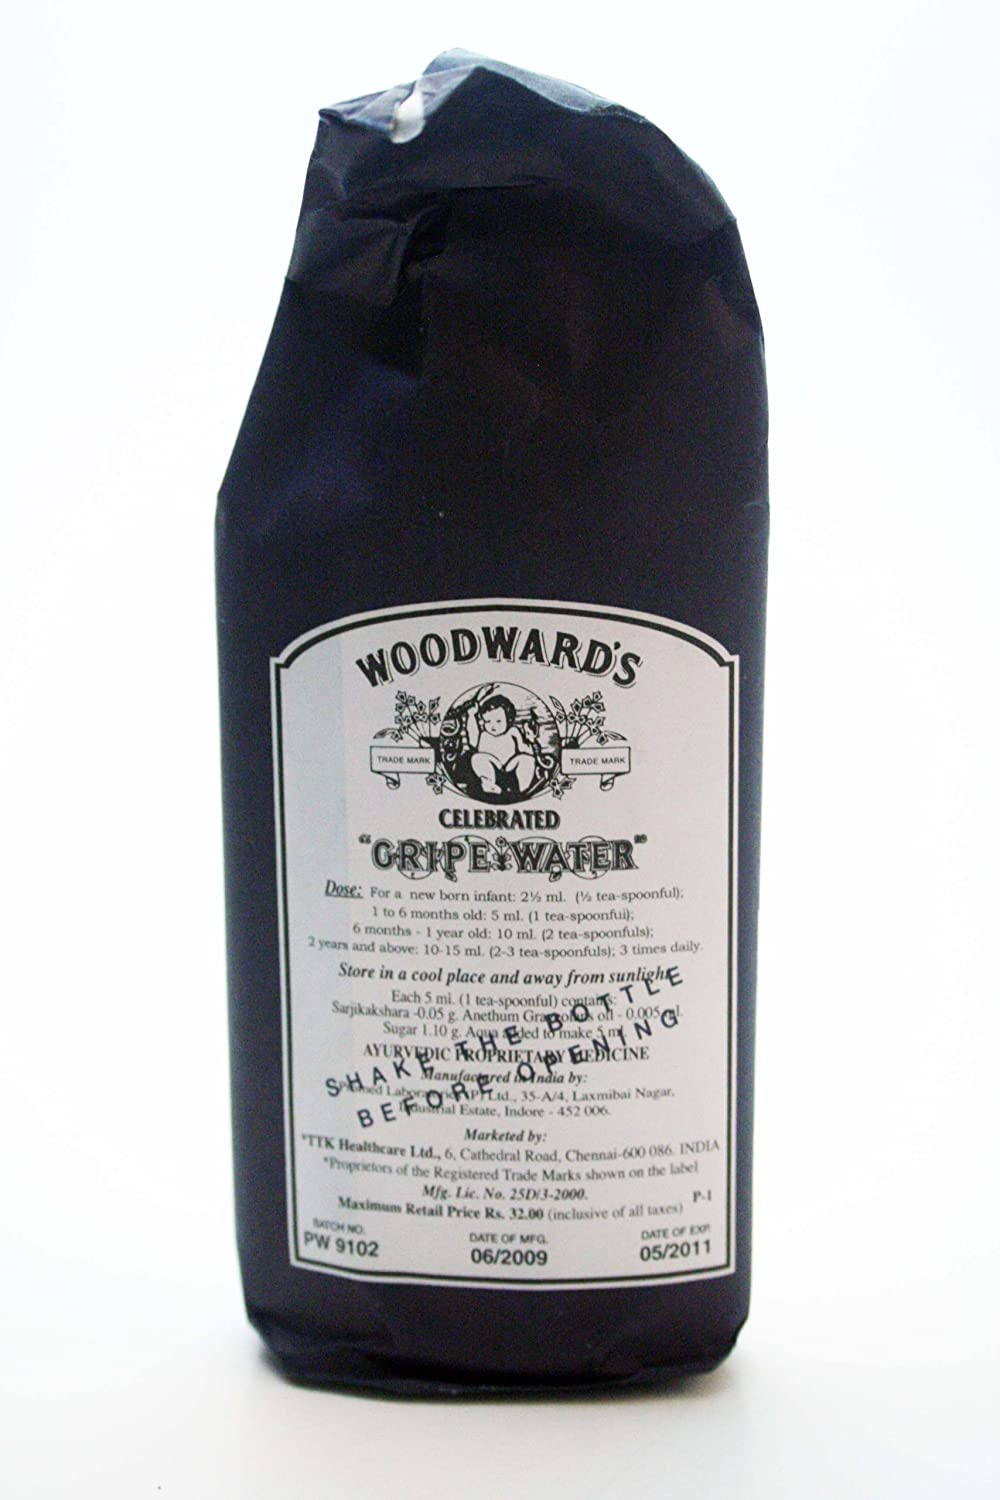 Similar product: Woodward's Gripe Water